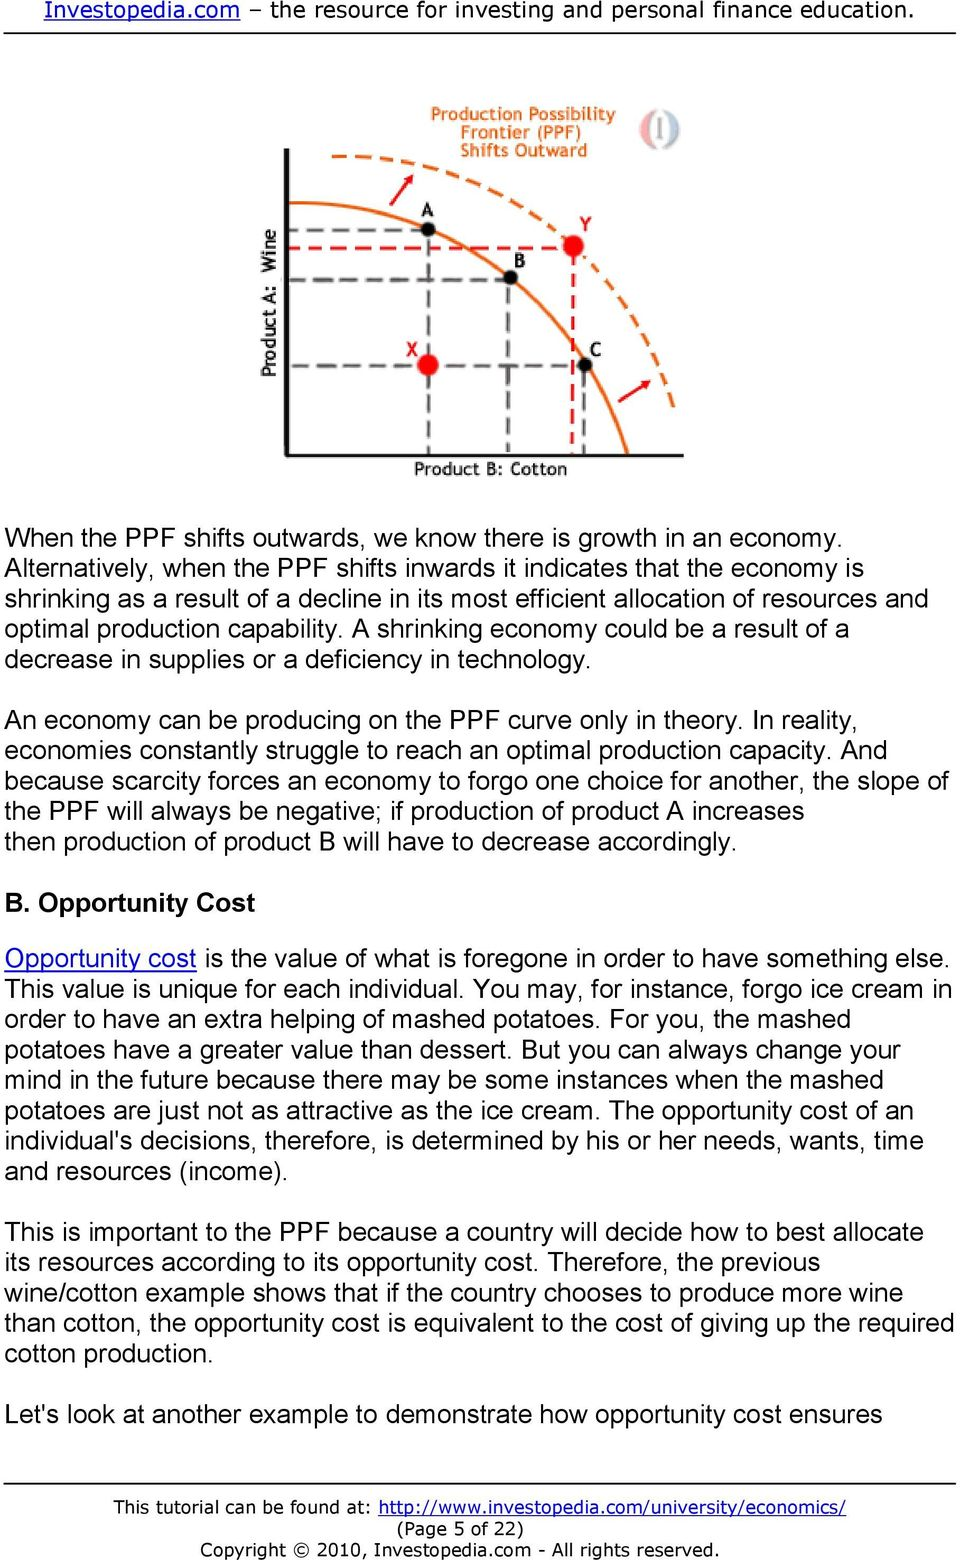 A shrinking economy could be a result of a decrease in supplies or a deficiency in technology. An economy can be producing on the PPF curve only in theory.